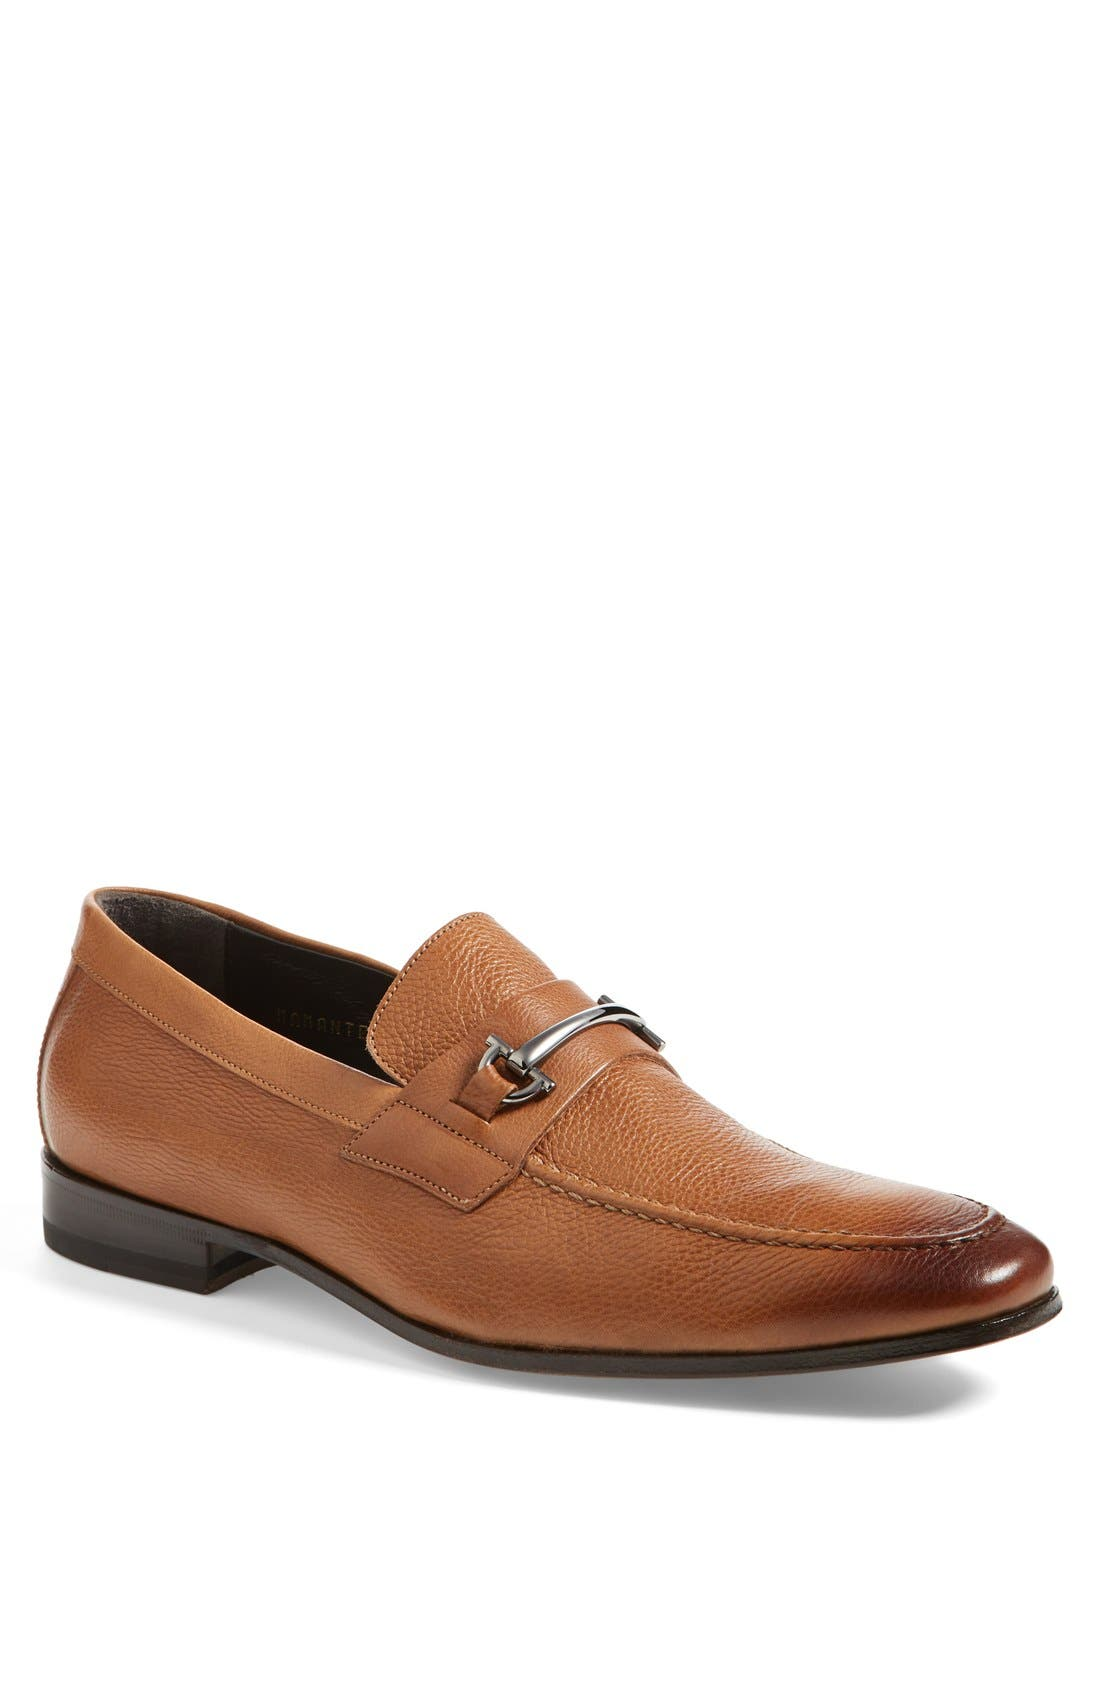 'Mamante II' Pebbled Leather Loafer,                         Main,                         color, Light Brown